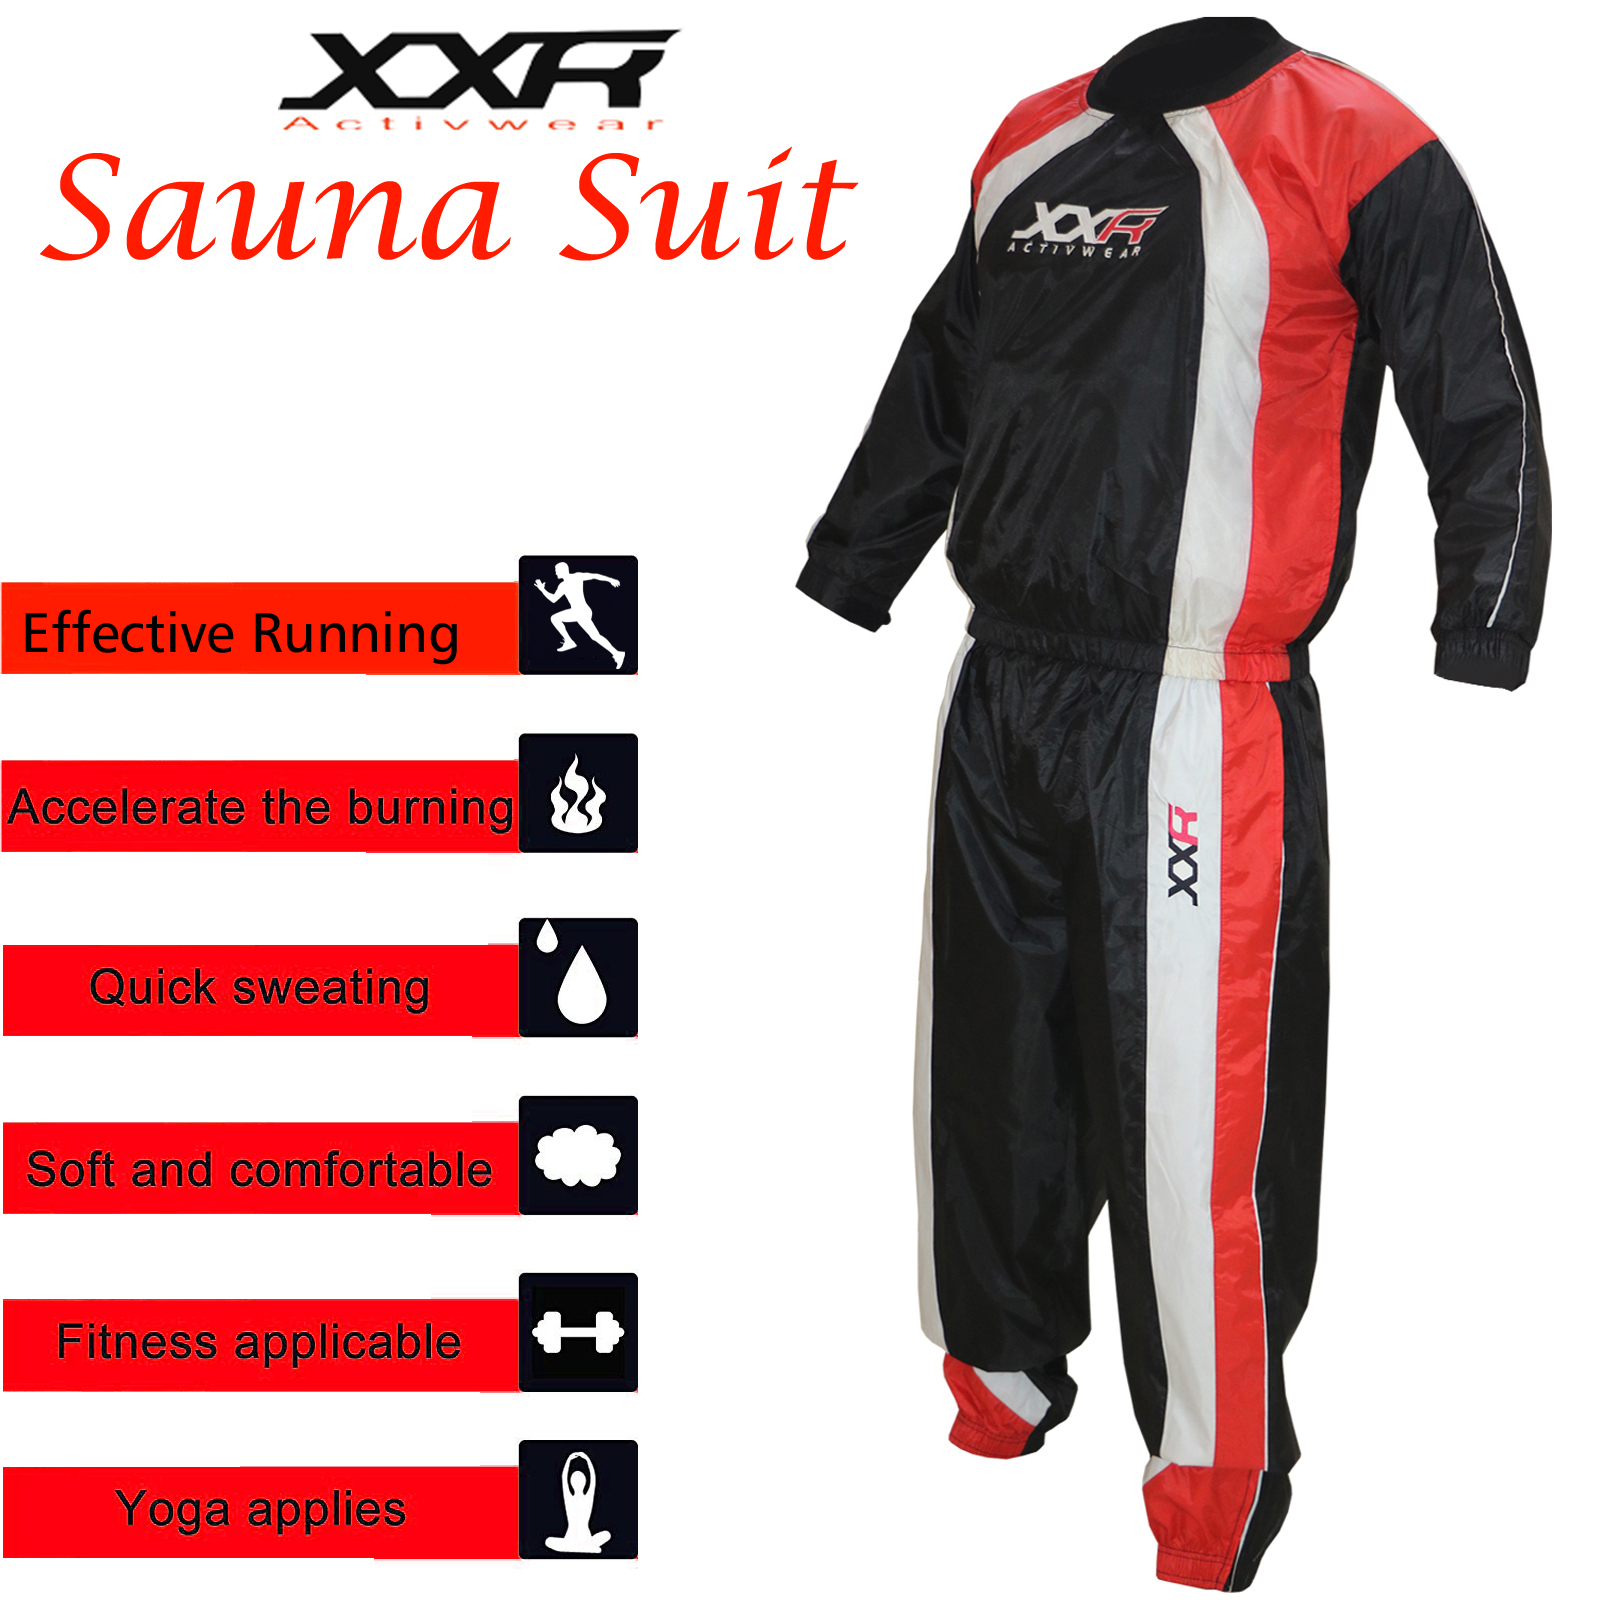 XXR Hot Slimming Neoprene Sweat Suit Bodysuit Vest For Weight Loss Sauna Suit